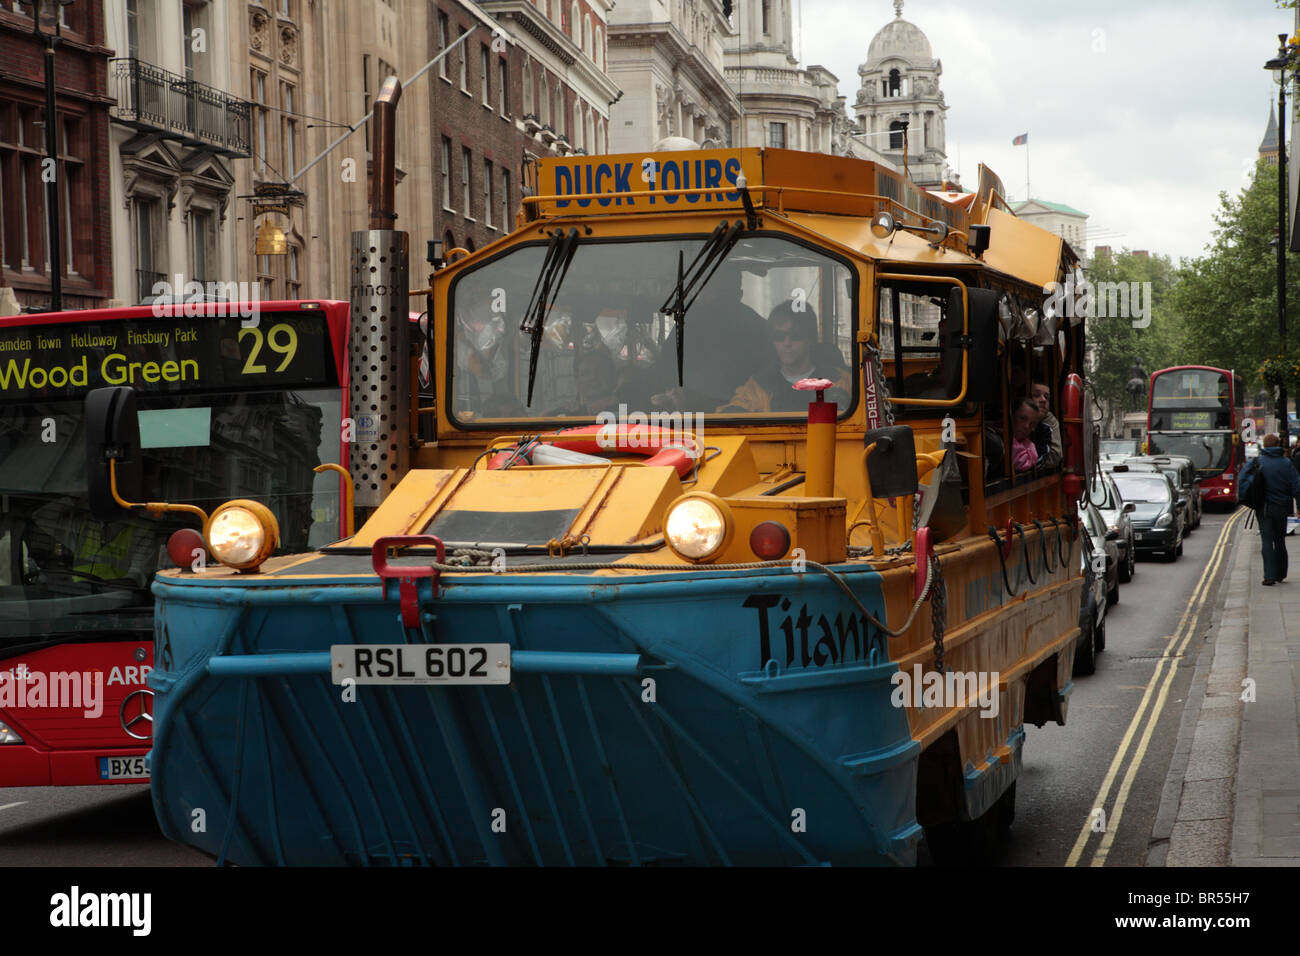 The Duck Bus amphibious vehicle in the street in Whitehall, Westminster, London, SW1. - Stock Image